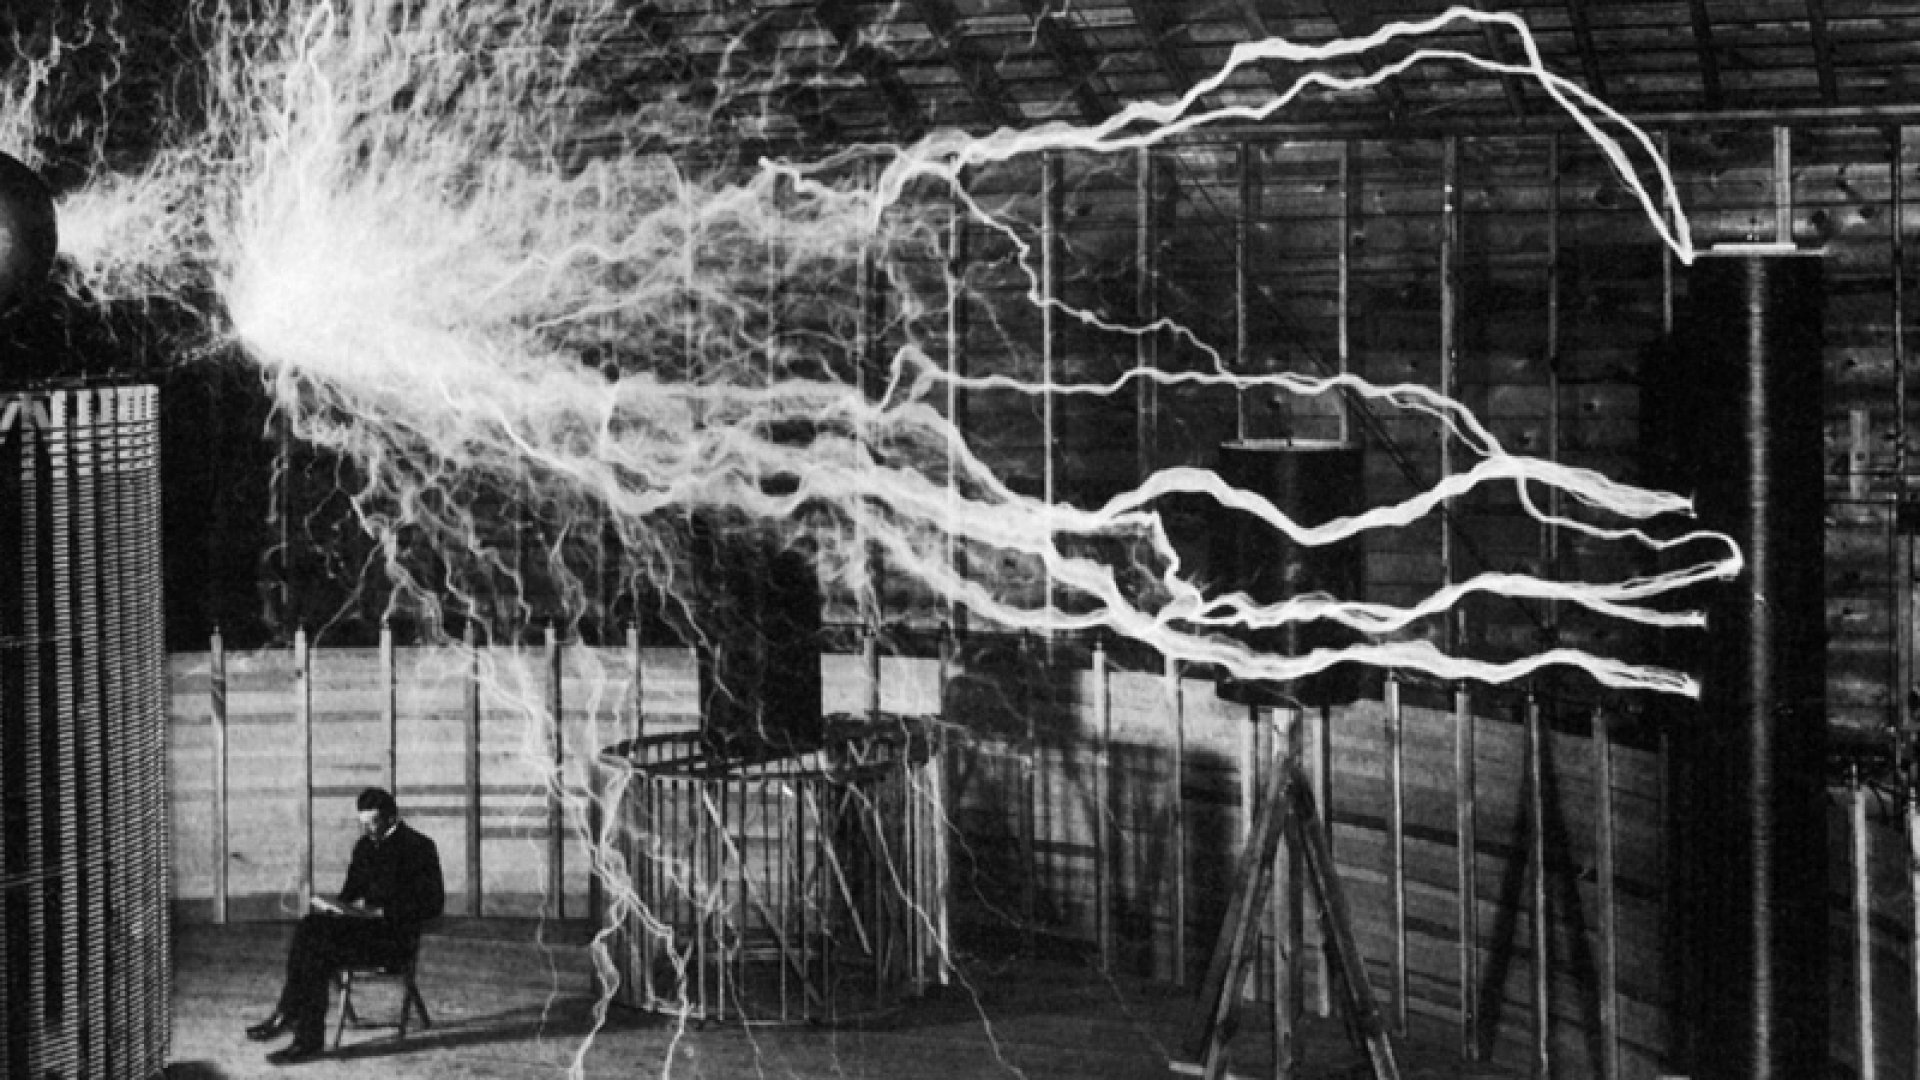 Business Lessons From Nikola Tesla's Brilliant (If Spotty) Career